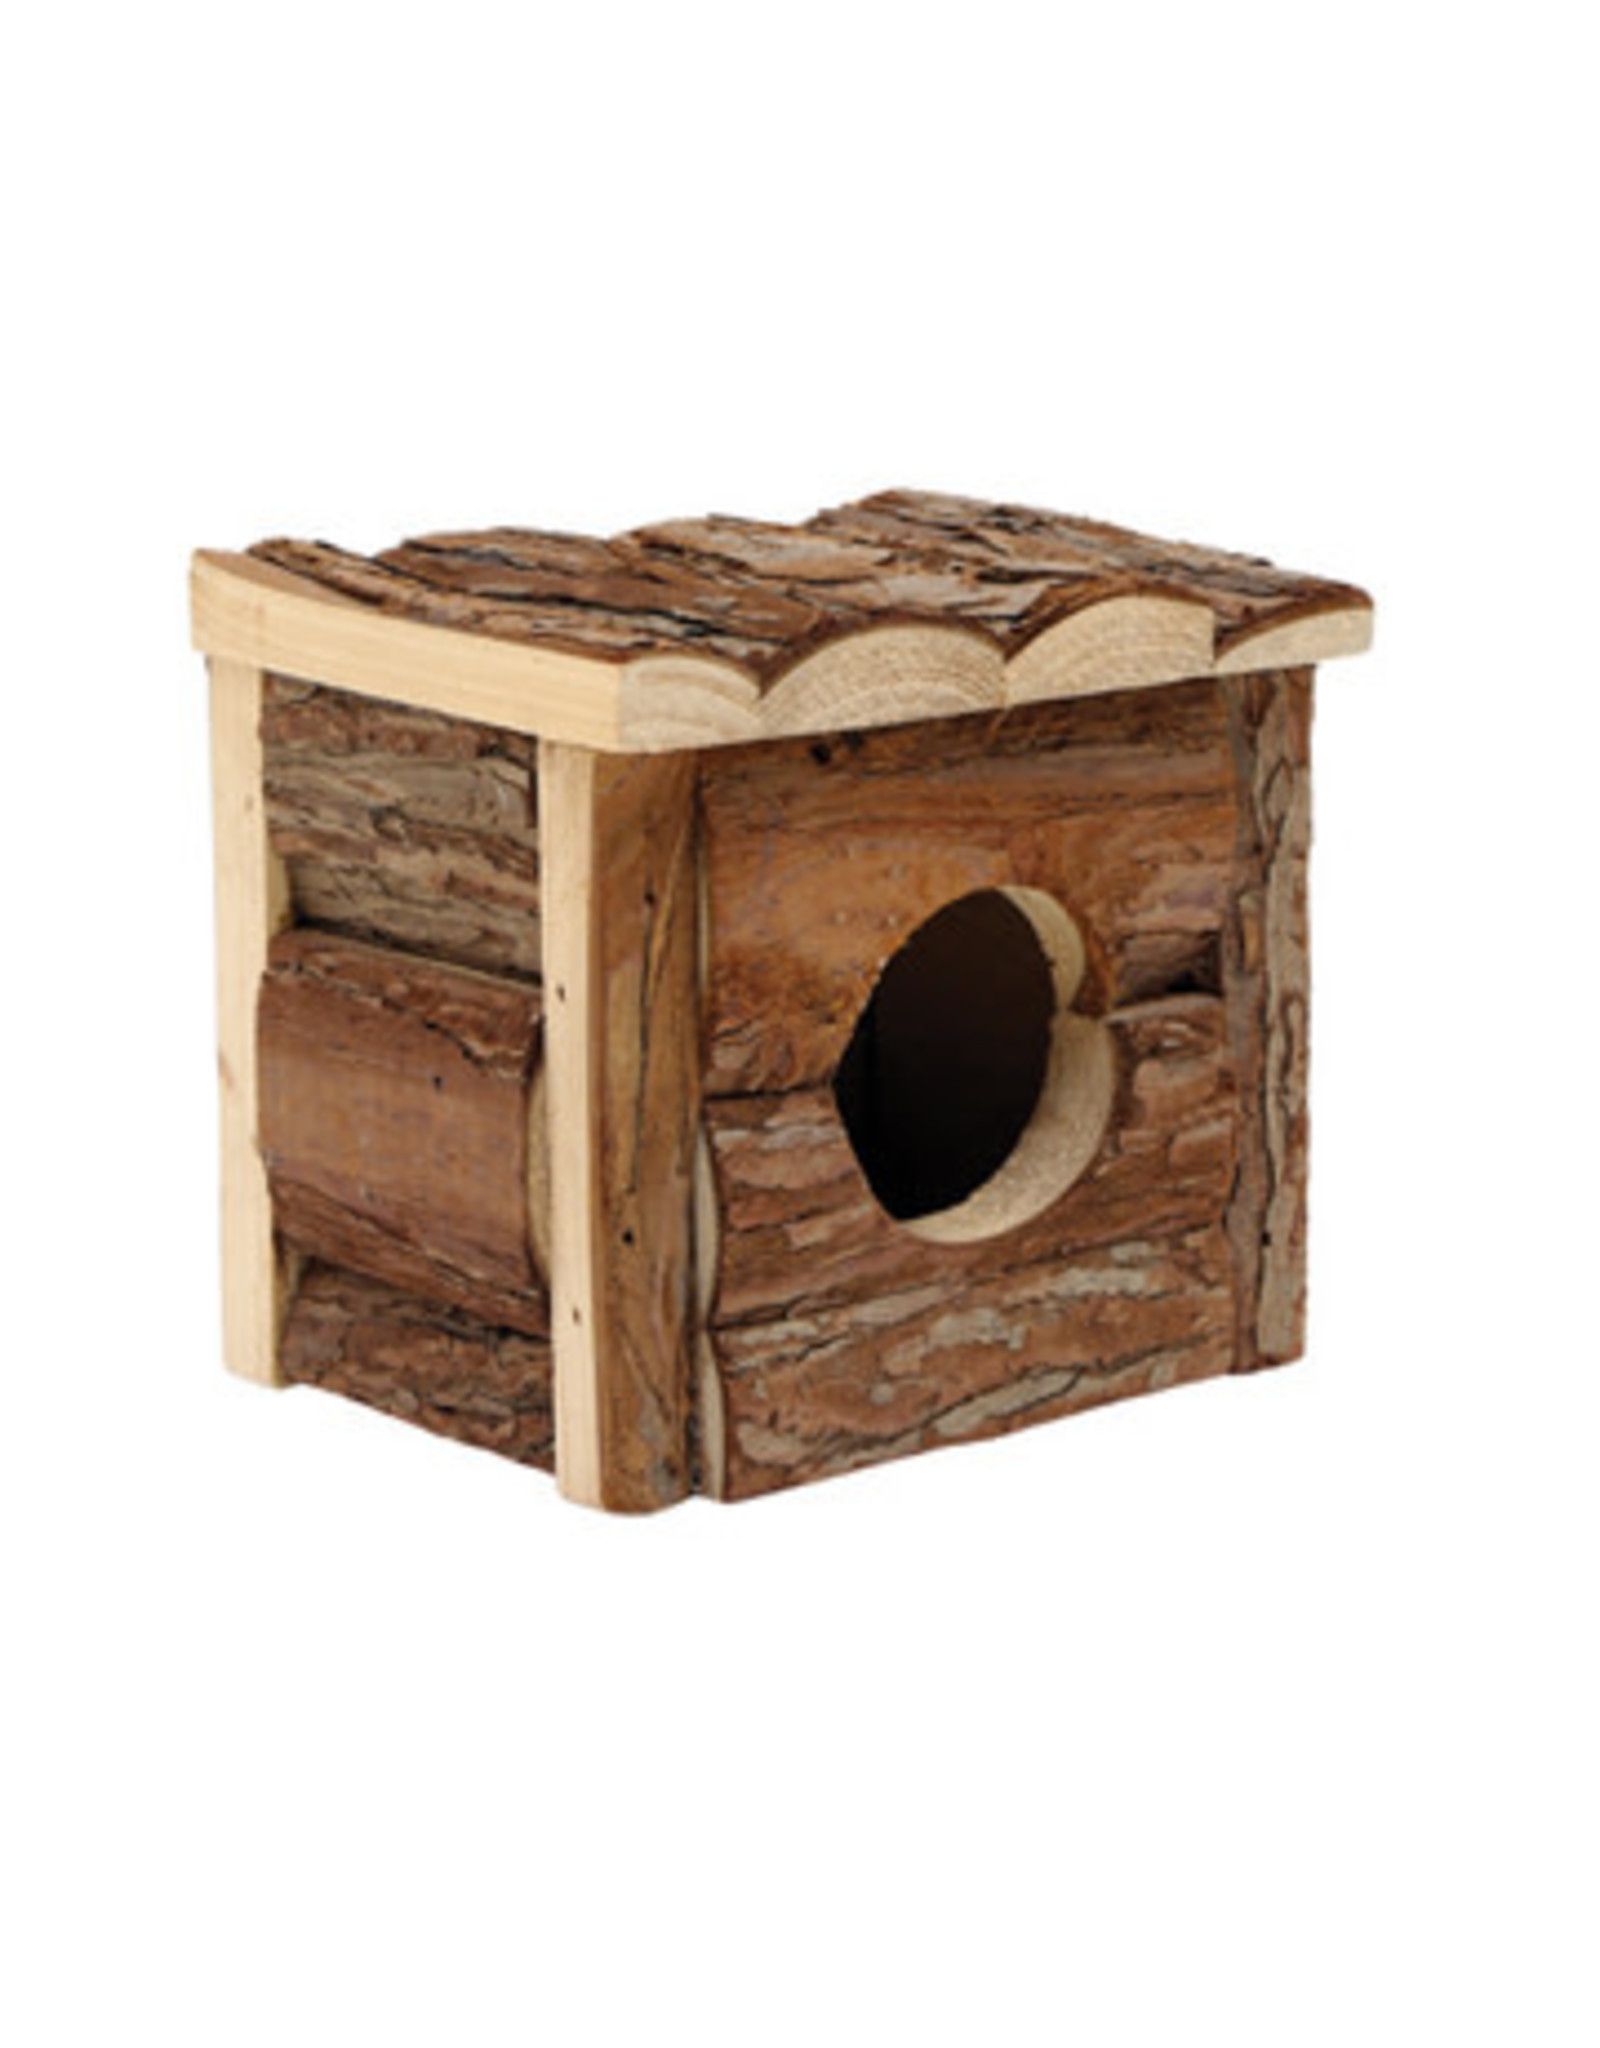 "Living World Tree House Real Wood Cabin - Small - 15.5 cm (6"") L x 15.5 cm (6"") W x 15 cm (5.75"") H"